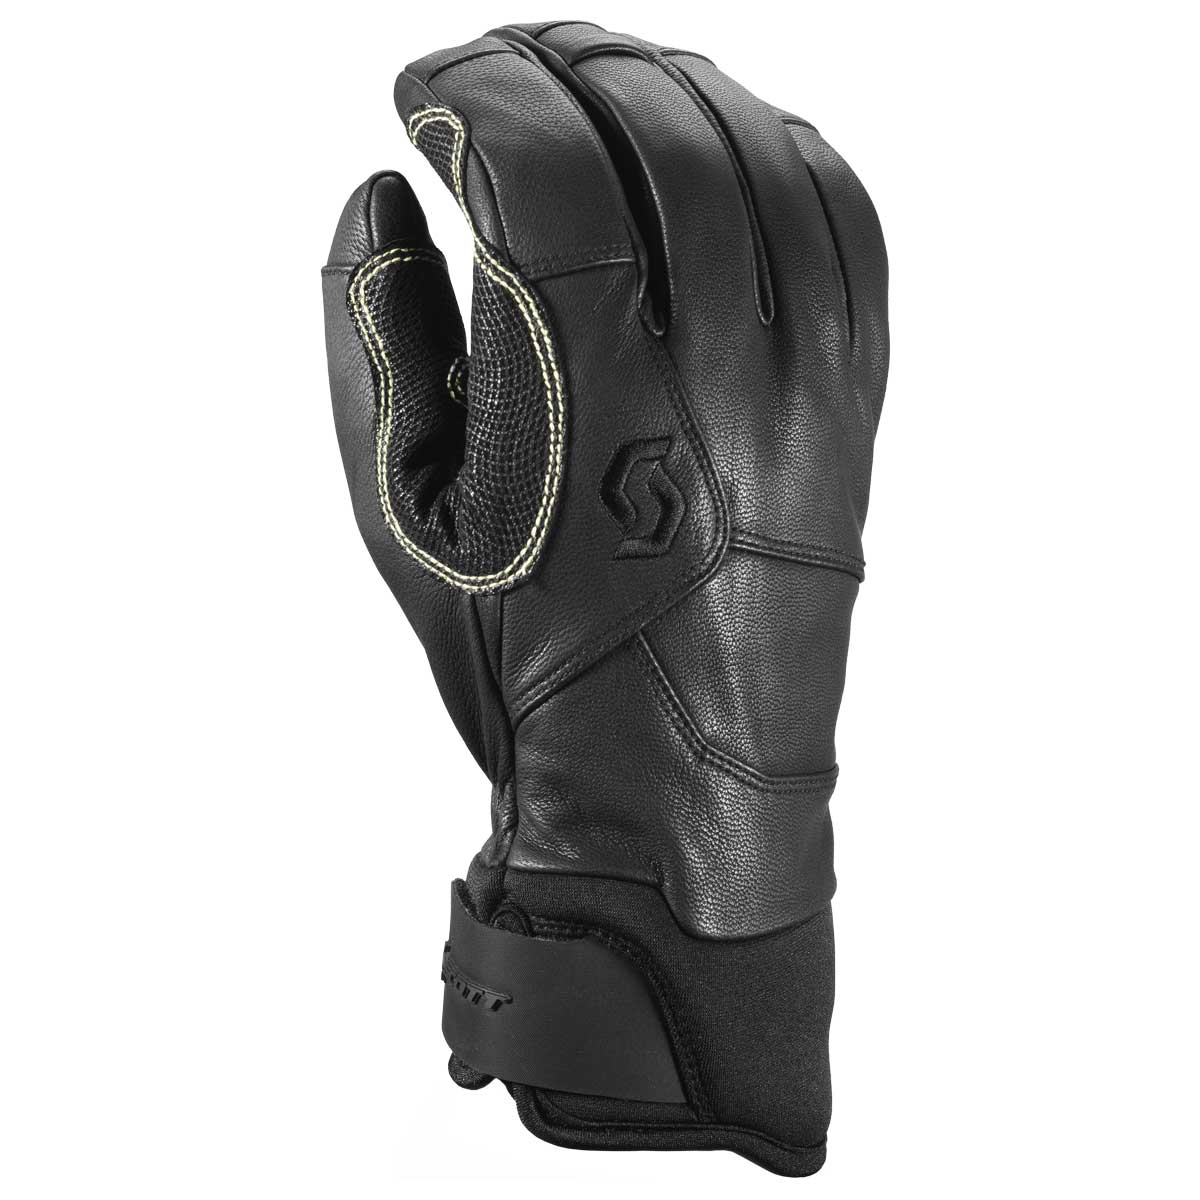 scott explorair premium gtx glove in black